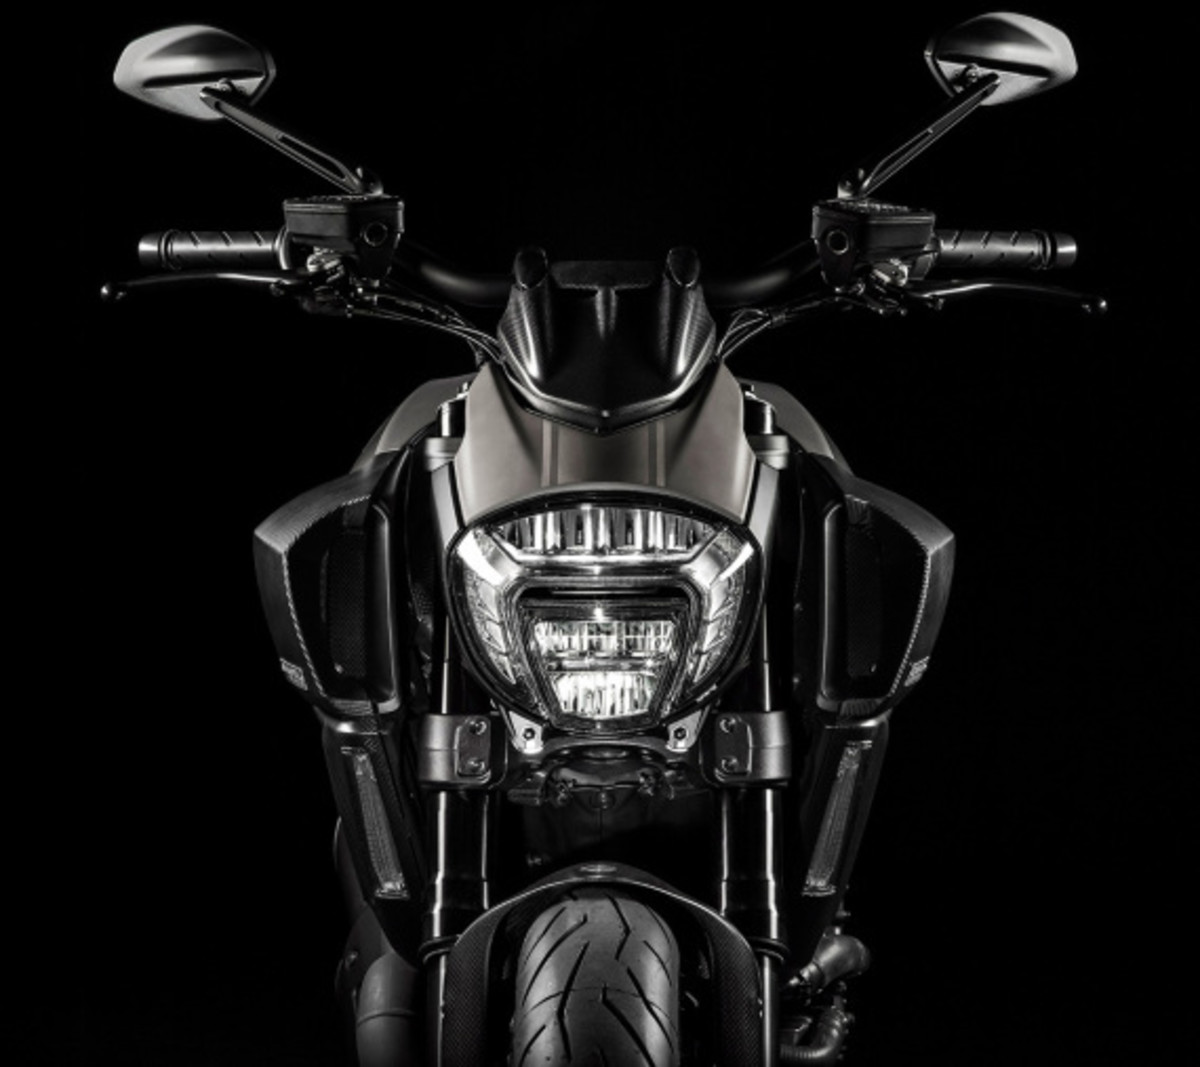 Ducati Diavel Titanium - Limited Edition Motorcycle - 9